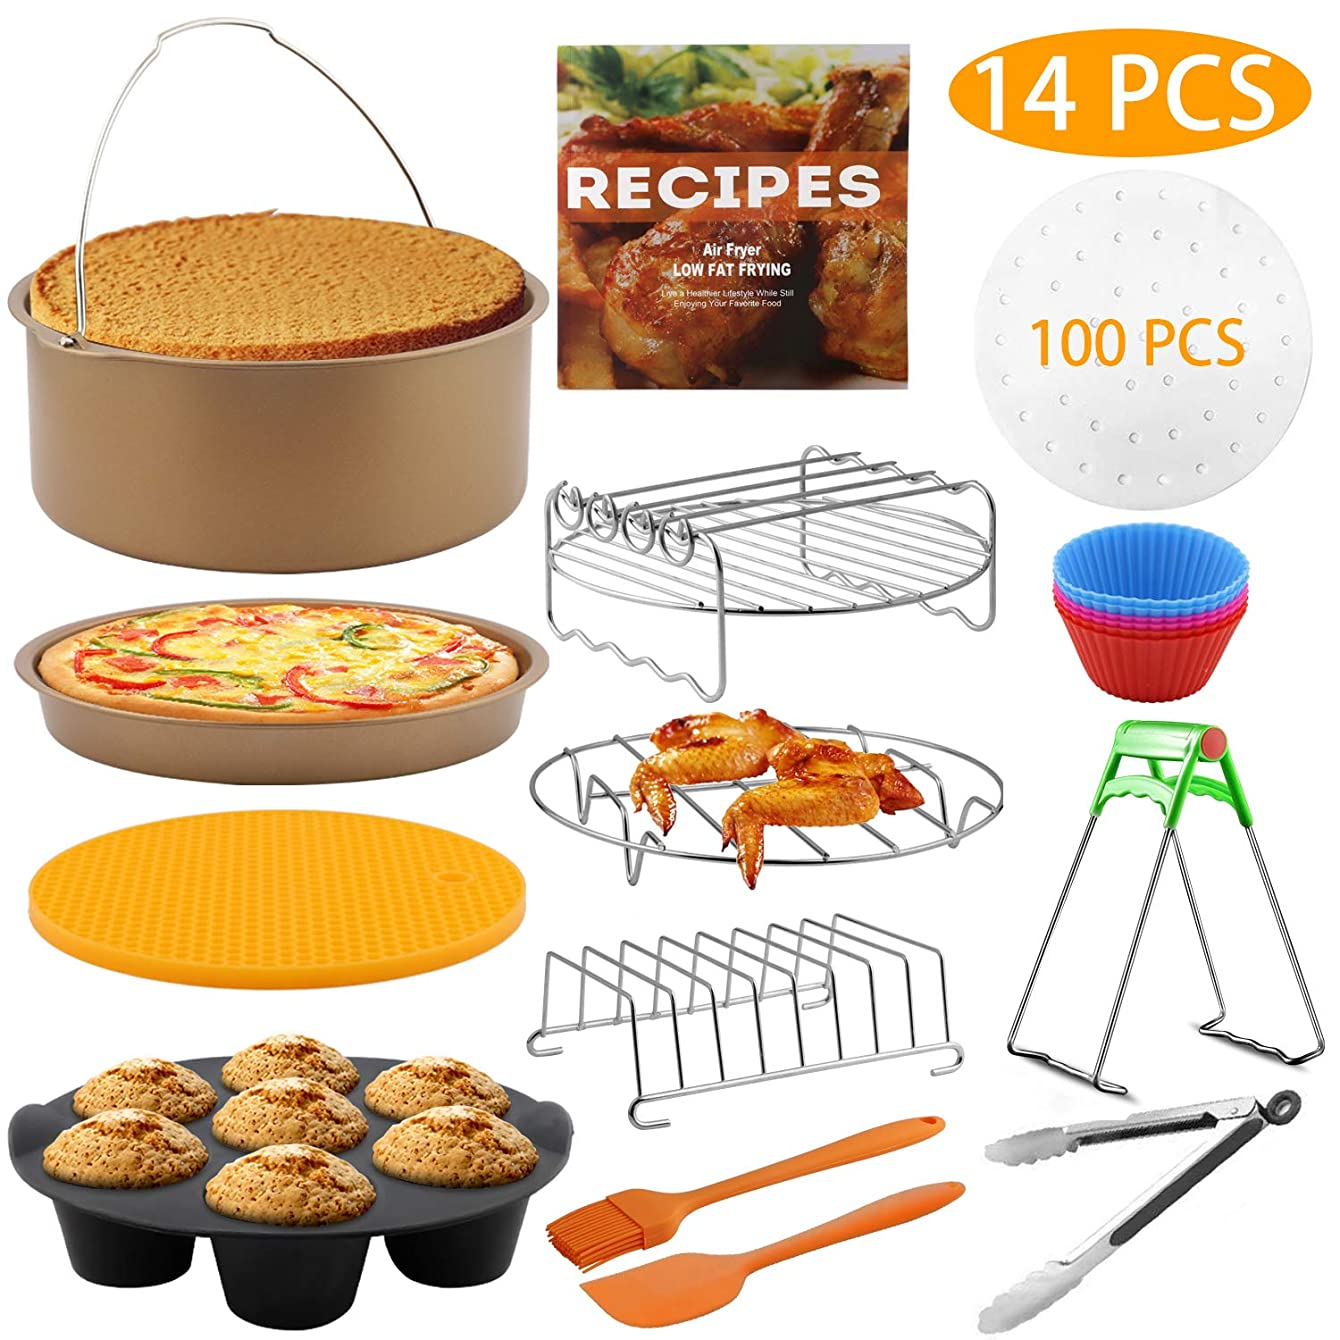 Air Fryer Accessories, 14pcs XL Deep Fryer Accessories for Gowise Phillips Cozyna Ninja 4.2/4.5/5.5/5.8/6.5 QT with Recipe Cookbook, Rust Proof 8'' Cake Barrel, Pizza Pan, 9'' Air Fryer Liners, Brush